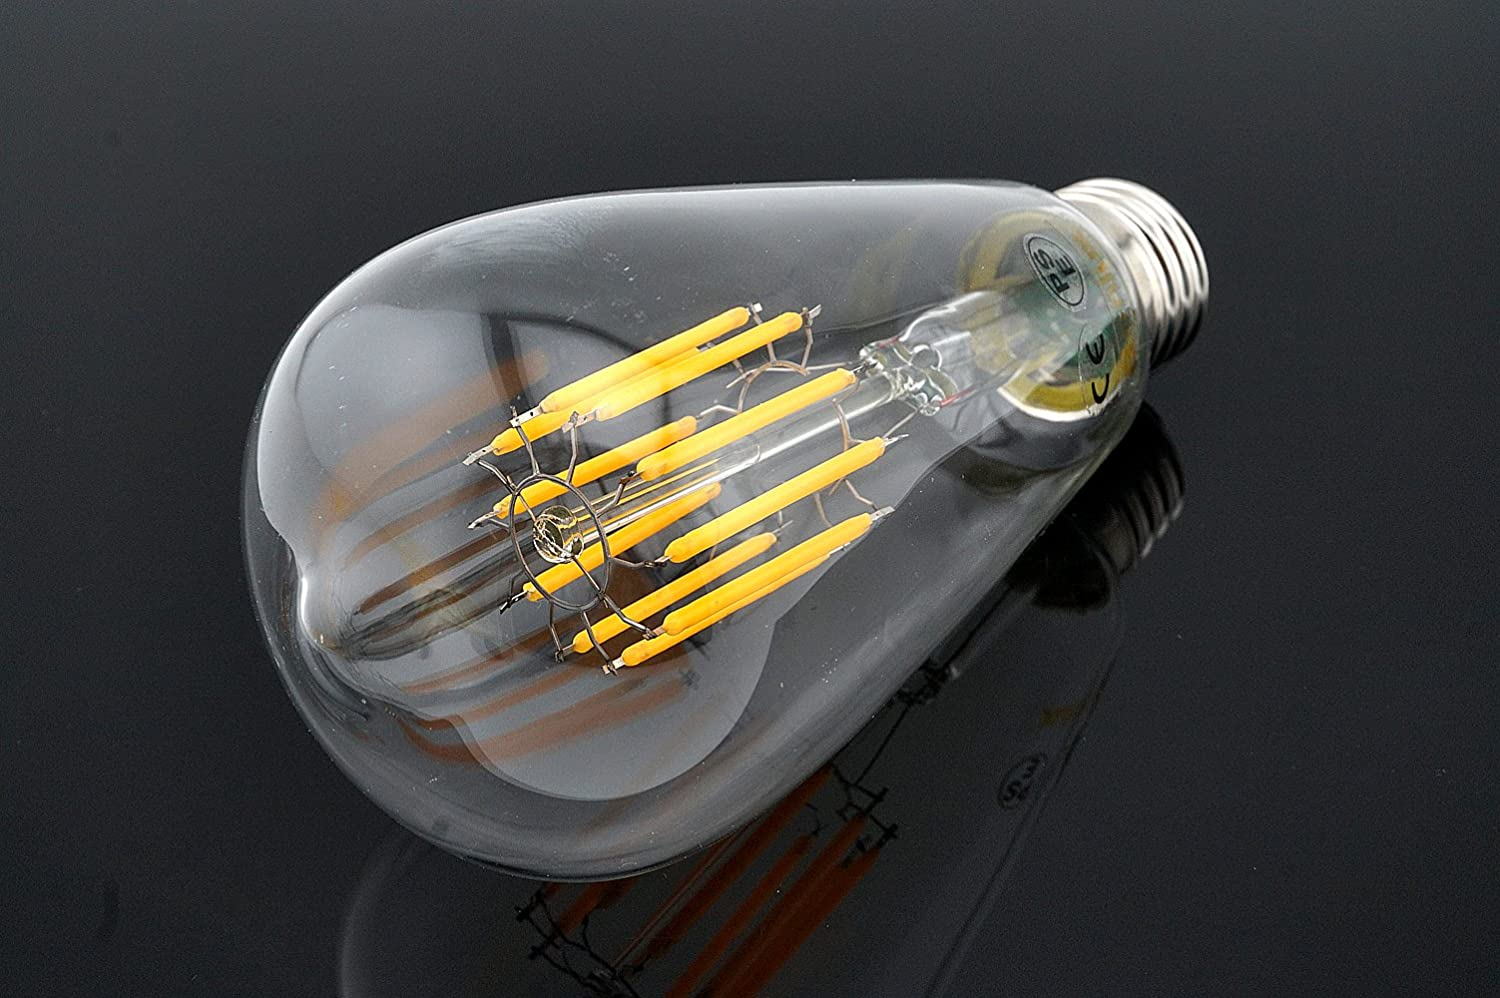 3 pack 10w st64 e27 led long filament bulb edison screw es led squirrel cage antique bulb 100w. Black Bedroom Furniture Sets. Home Design Ideas